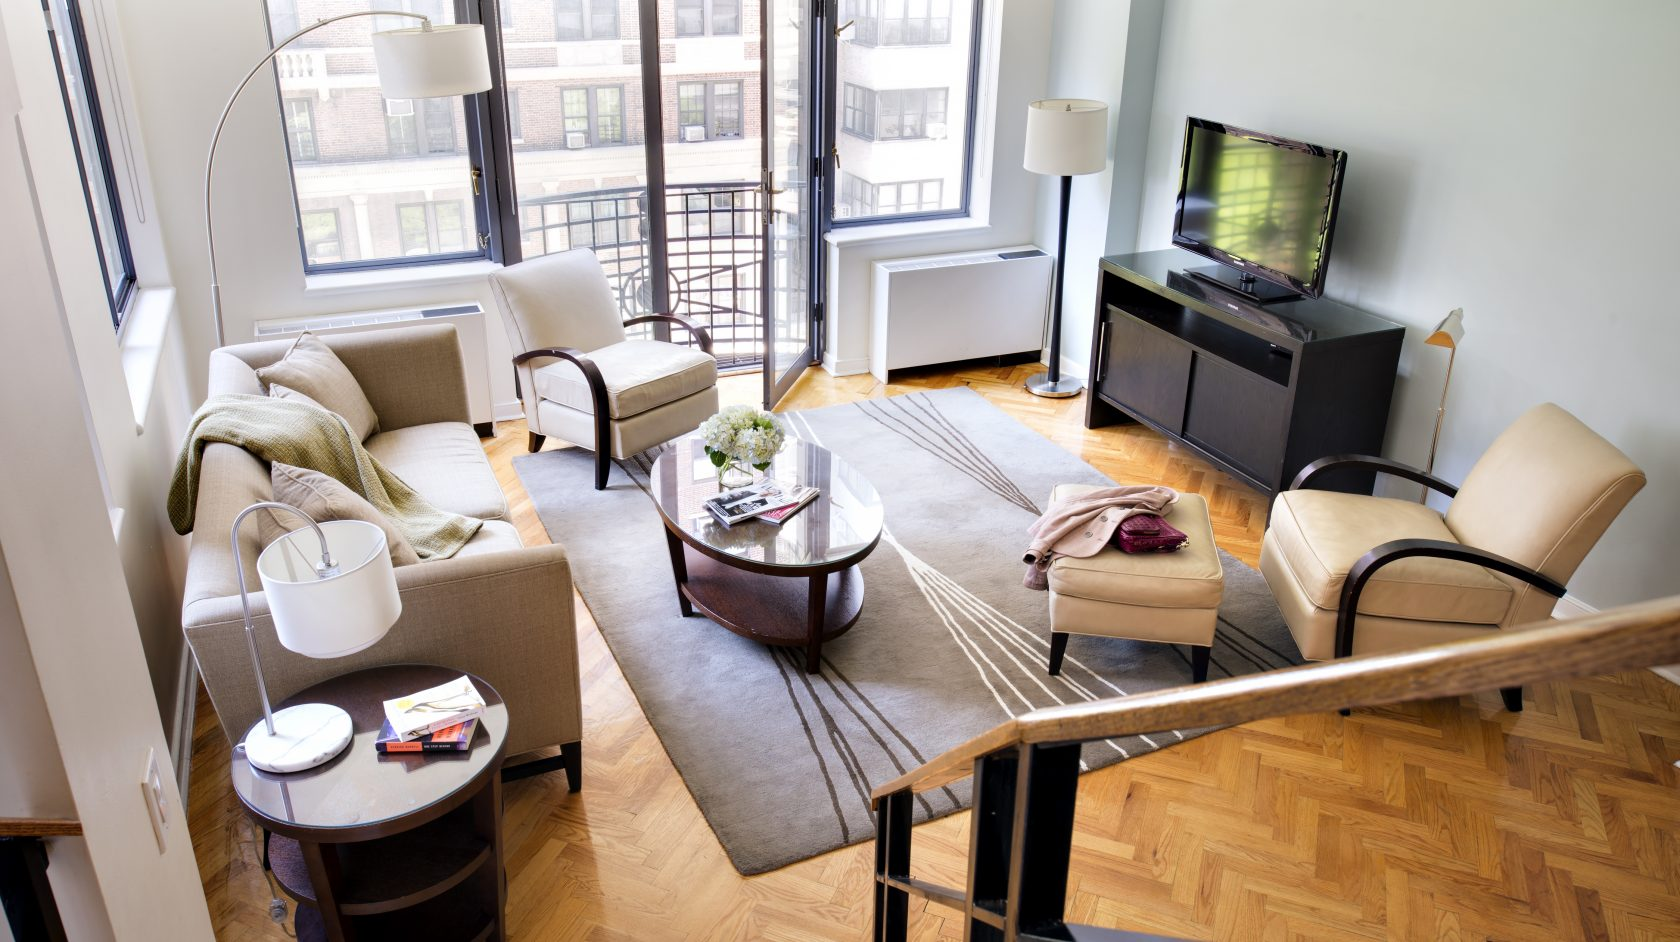 living room at sutton court townhomes in nyc